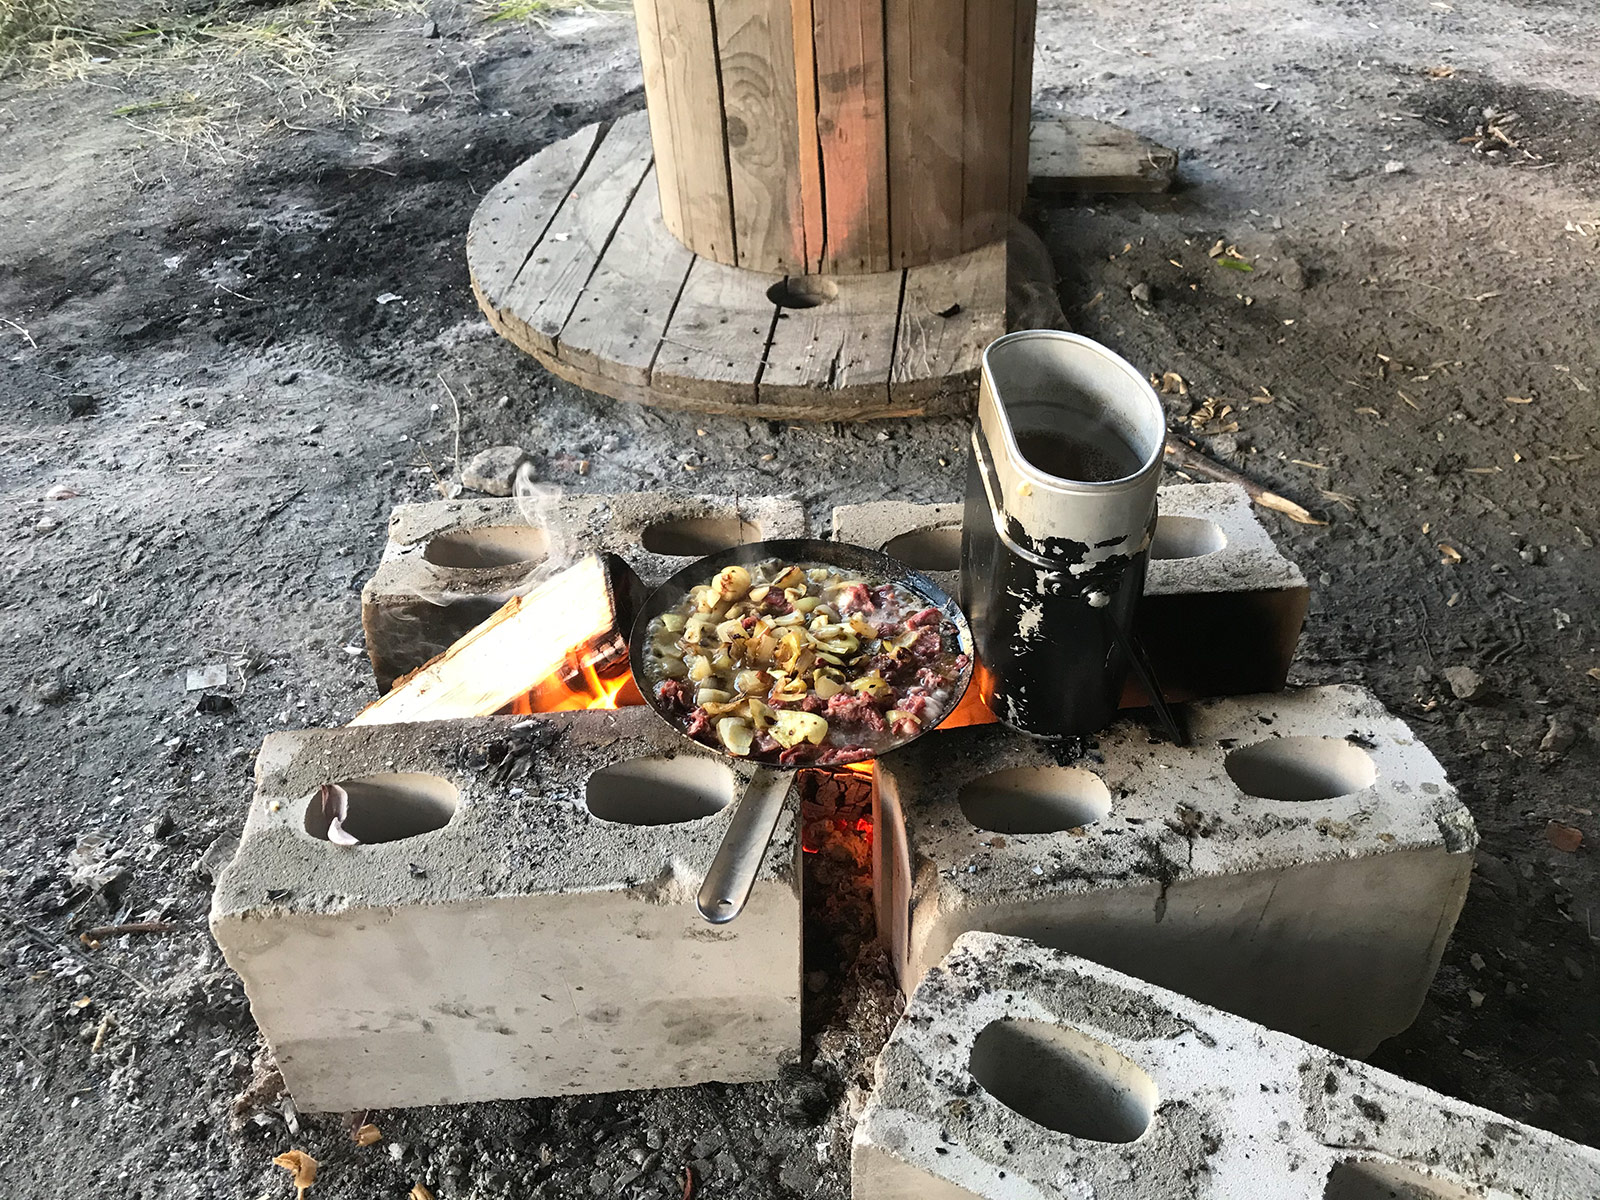 The Swiss mess tin stored my survival kit and worked as a cooking vessel